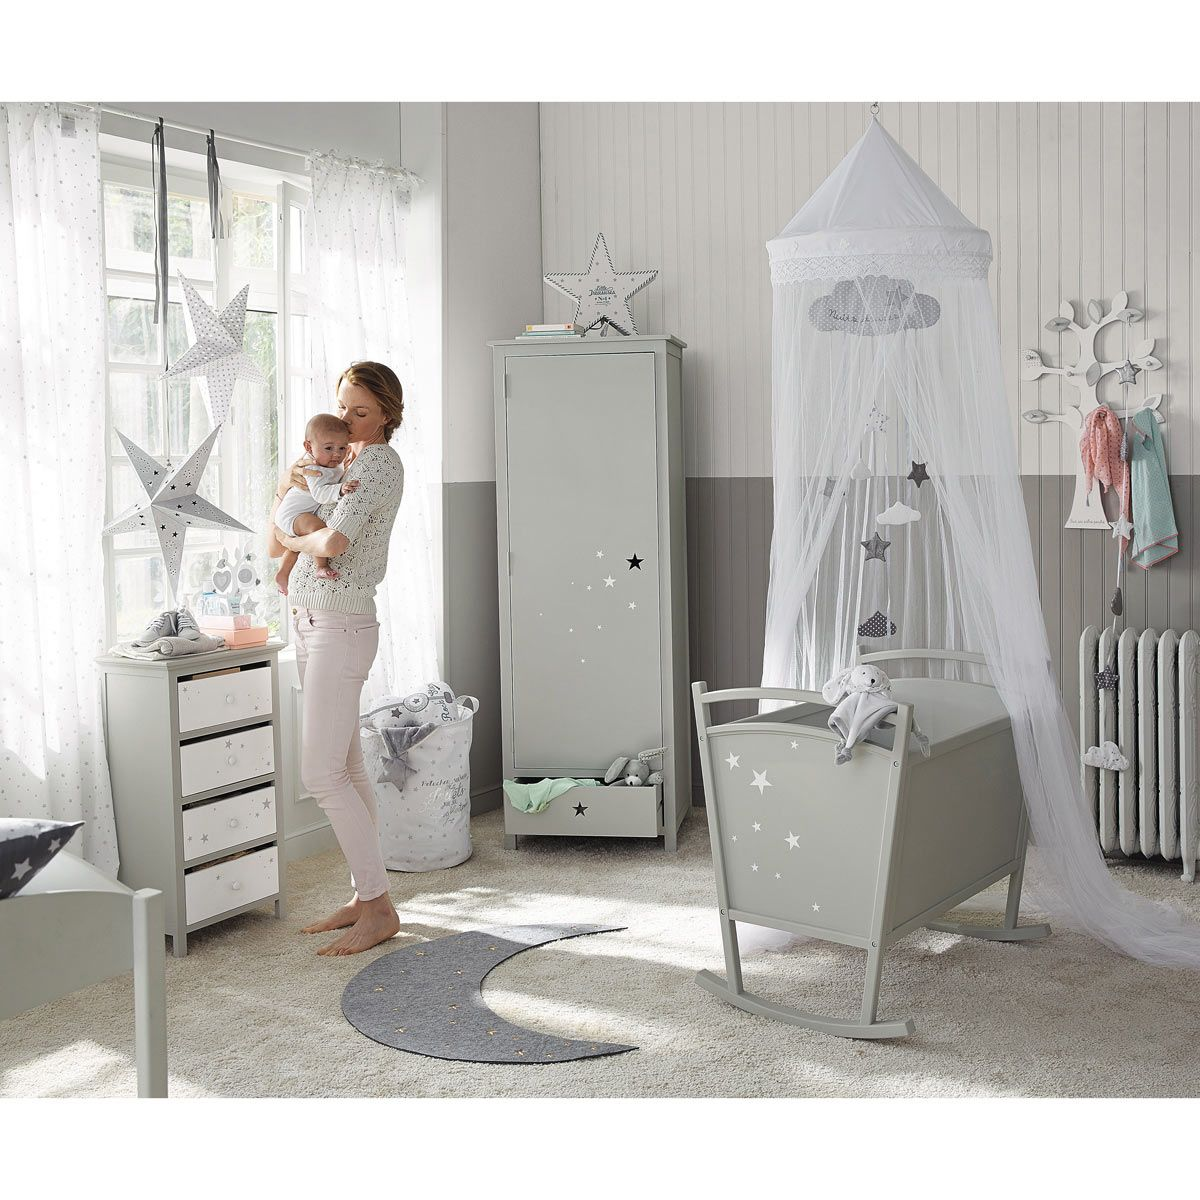 rideau nouettes en coton blanc 102 x 250 cm chambre pour b b pour b b et rideau blanc. Black Bedroom Furniture Sets. Home Design Ideas